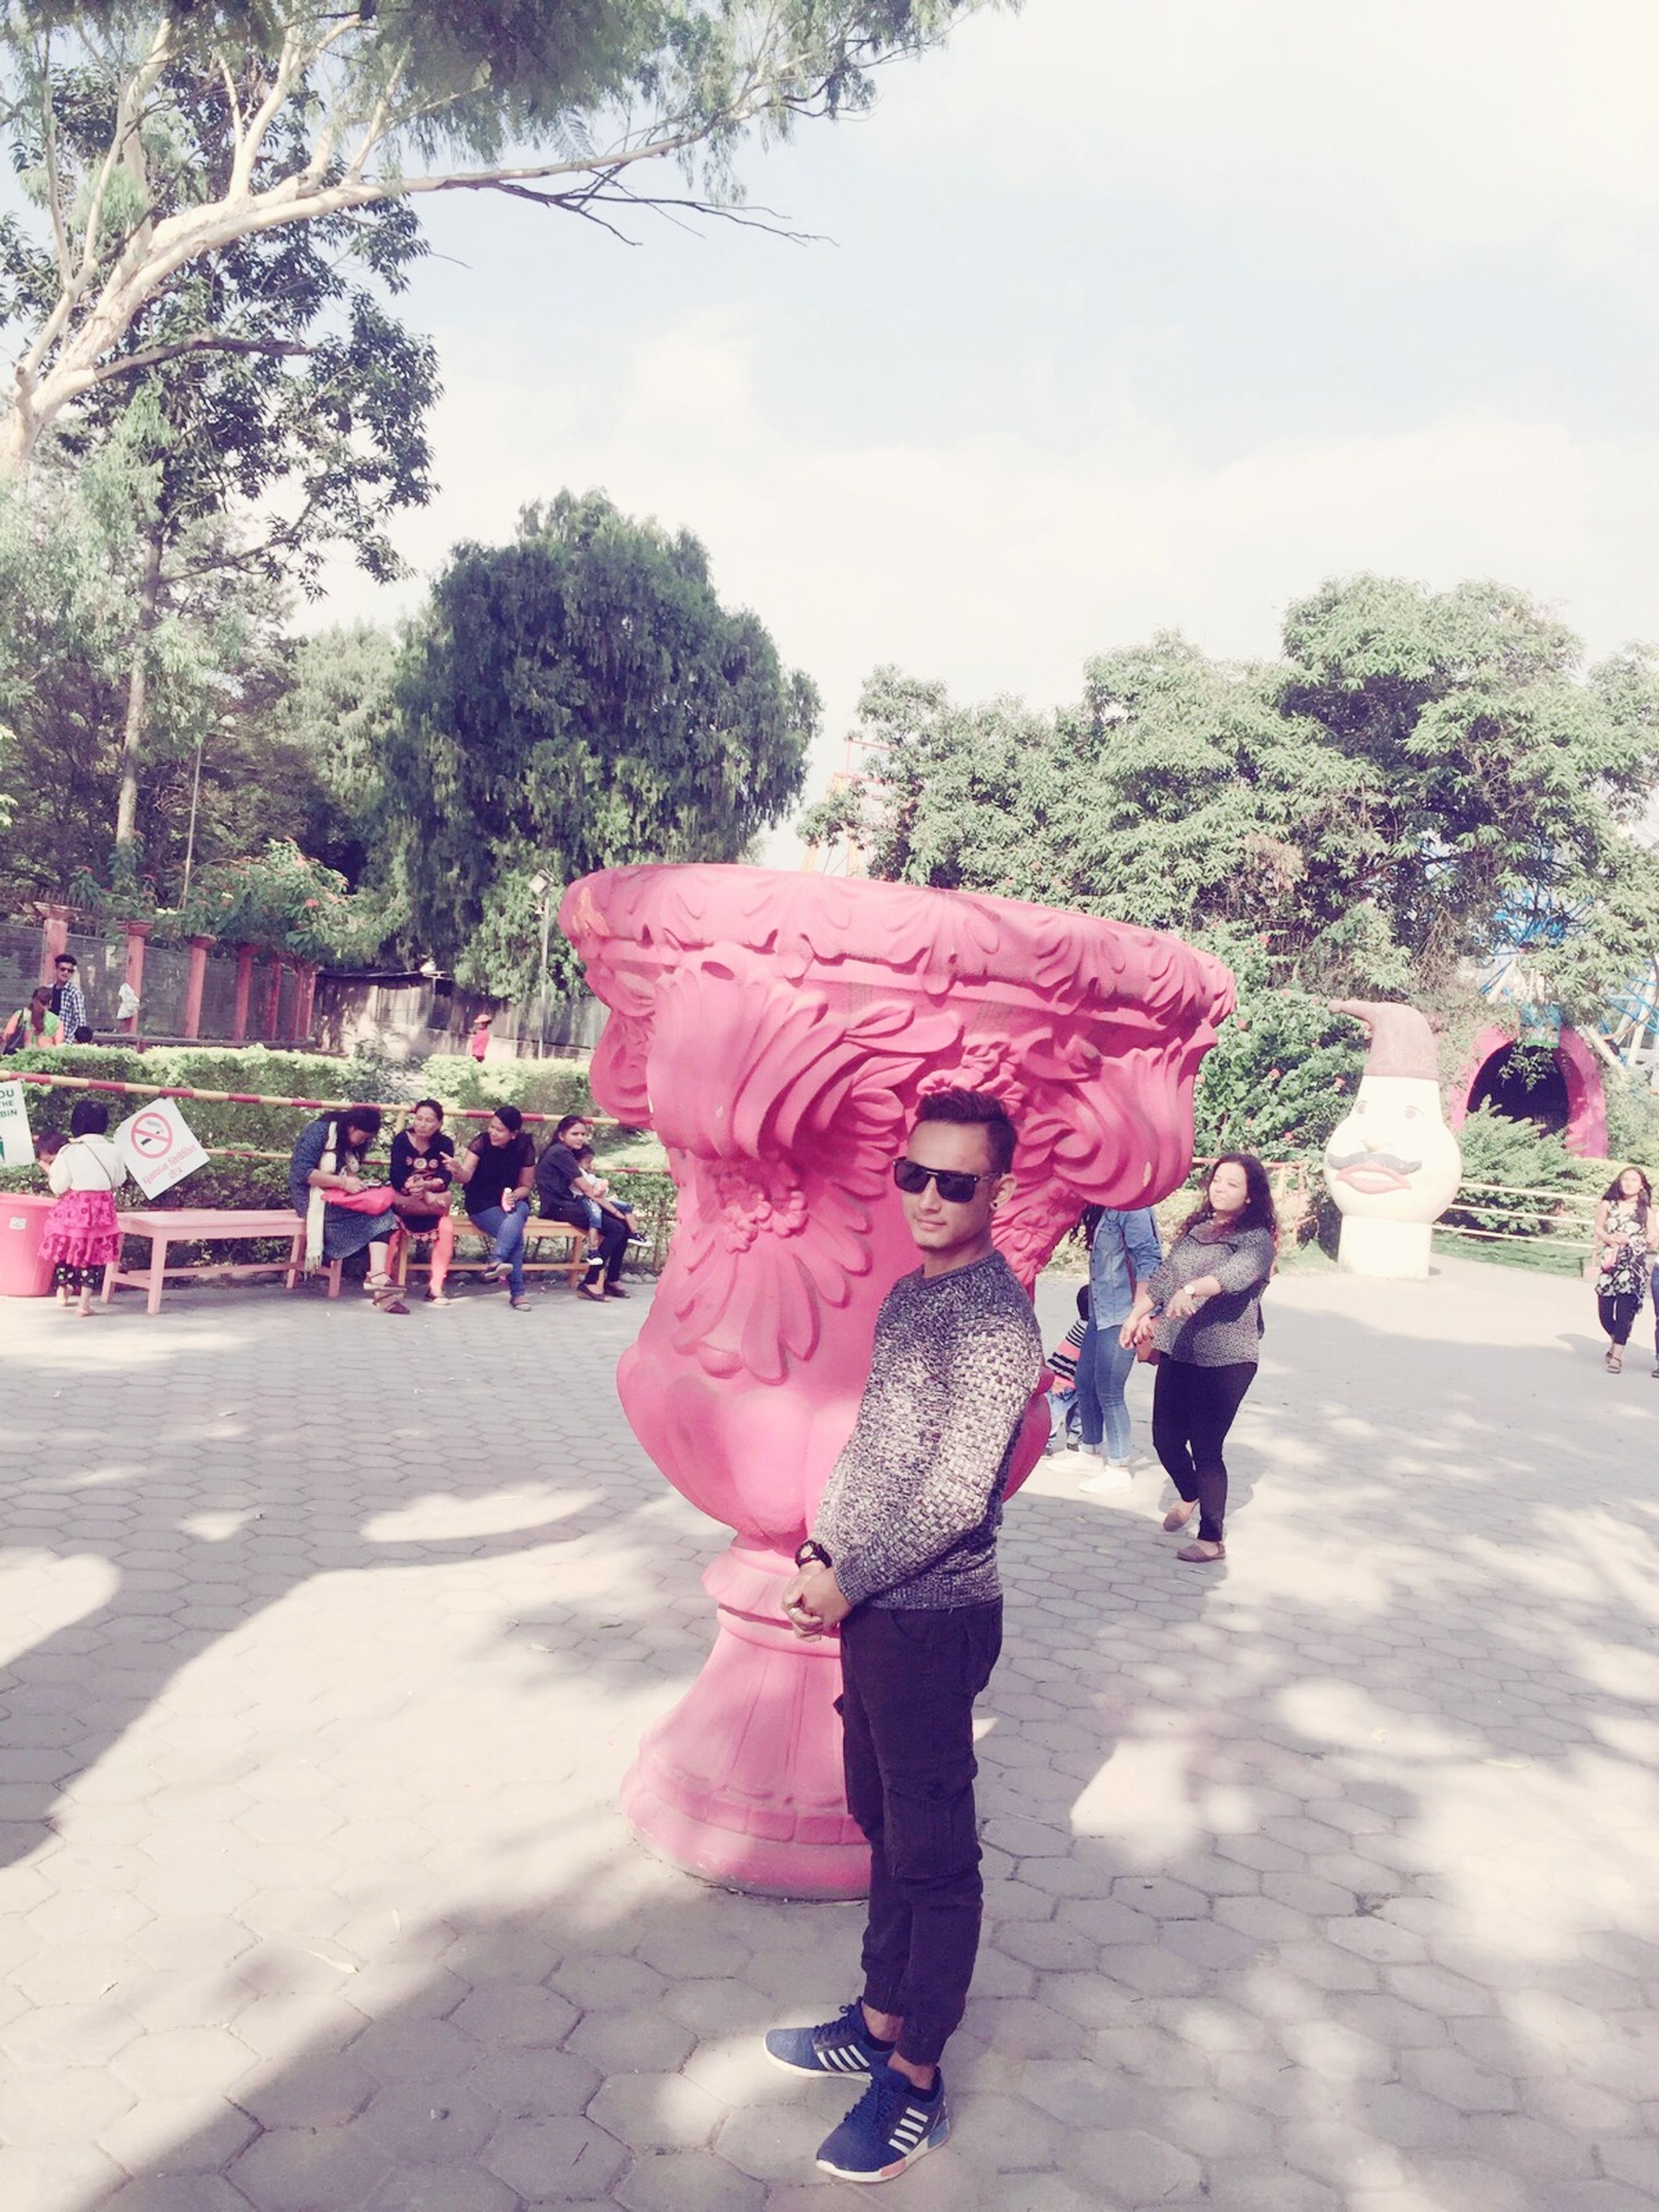 tree, one person, full length, pink color, real people, one girl only, happiness, lifestyles, outdoors, day, leisure activity, powder paint, childhood, people, sky, clown, holi, human body part, adult